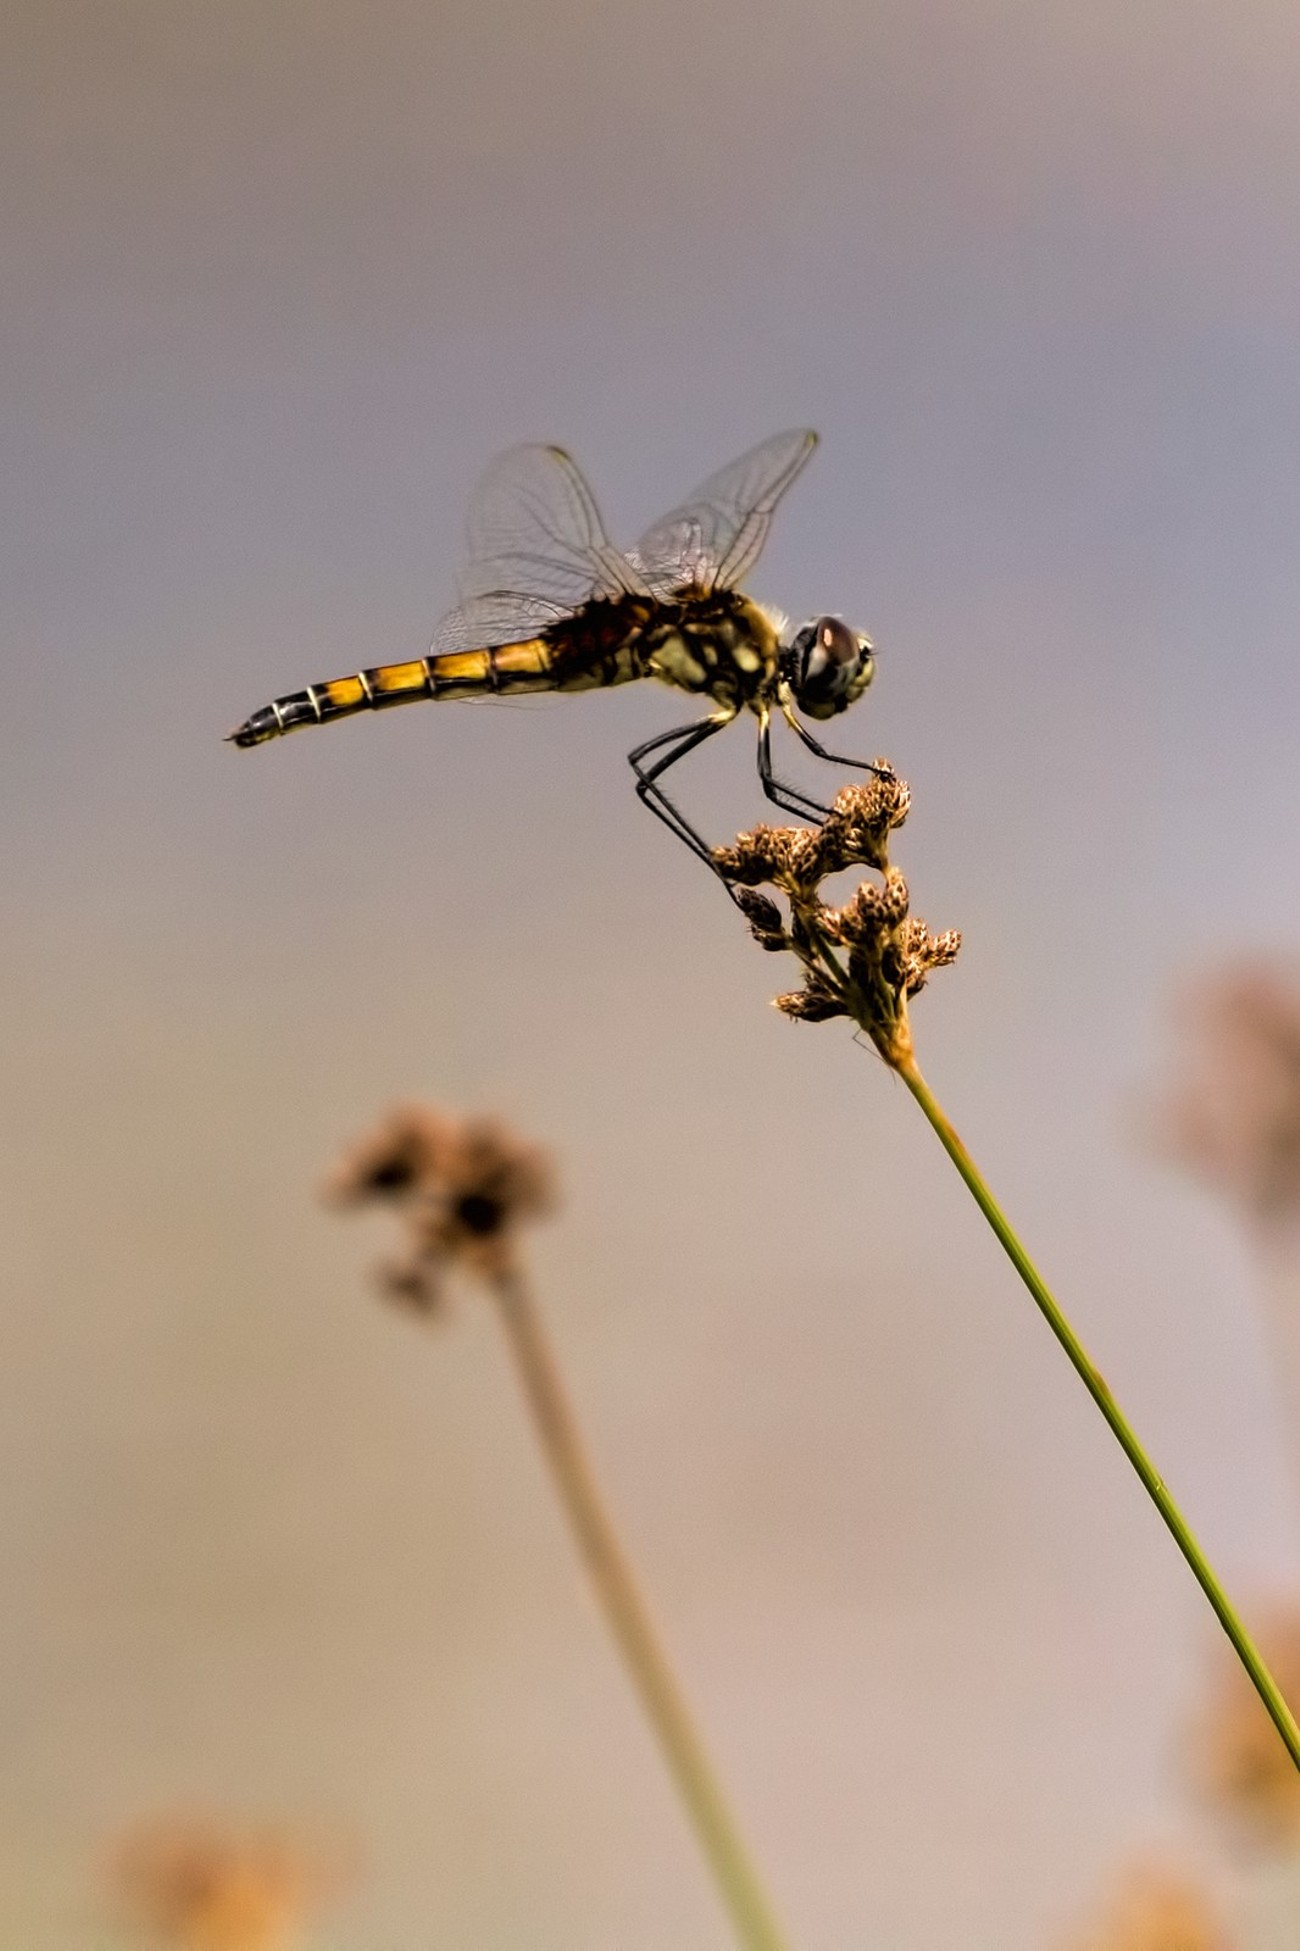 Closeup of a yellow dragonfly perched on a flower at Lake Rose, Aberdeen, FL, USA.